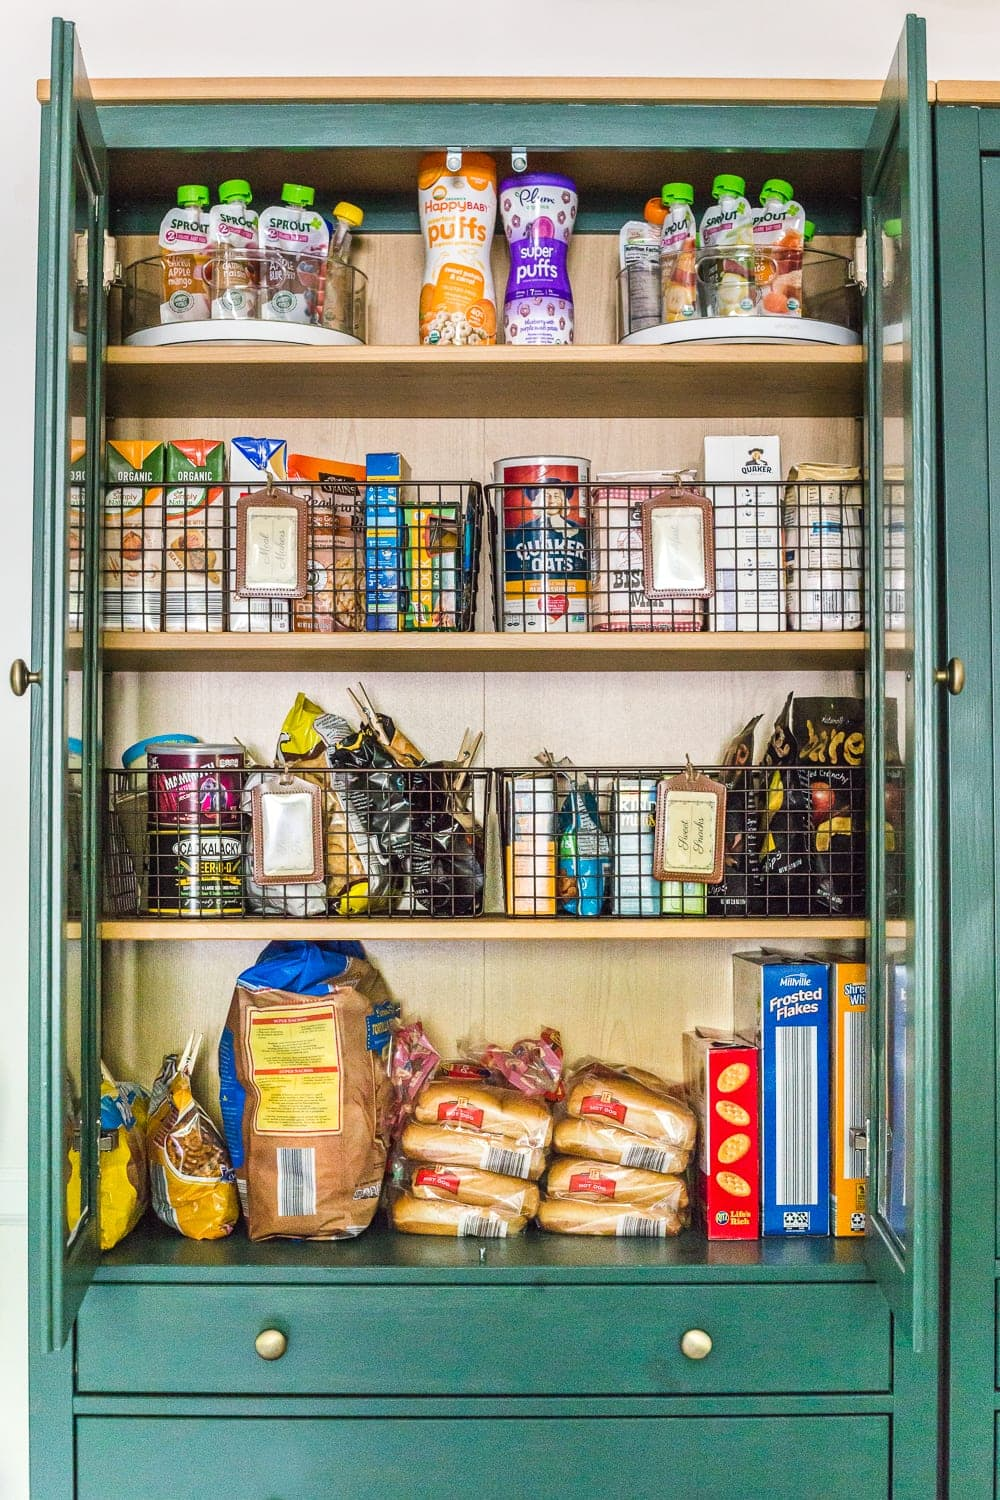 IKEA Hemnes Pantry Cabinet Organization - Tips and ideas for maximizing storage and creating function for food storage in a cabinet to repurpose as a pantry. #pantryorganization